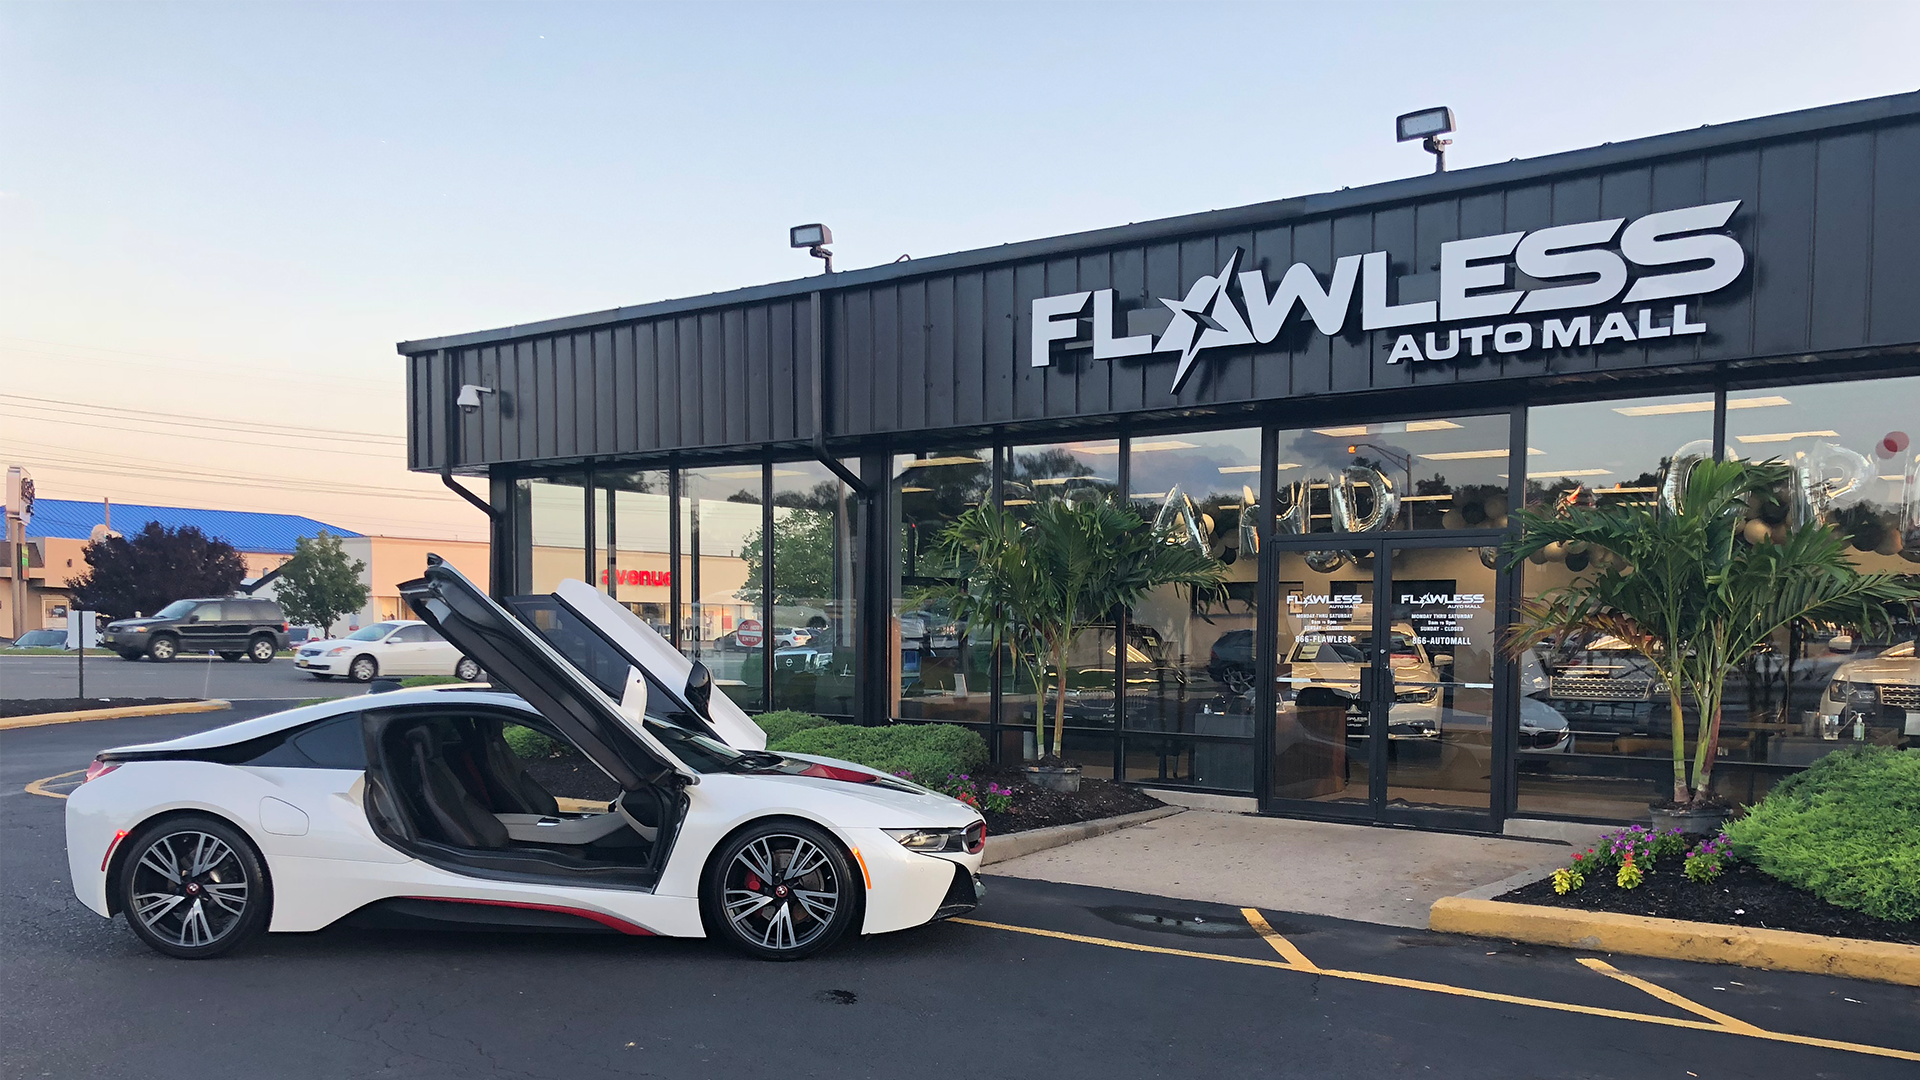 Flawless Auto Mall Dealer In Iselin Nj